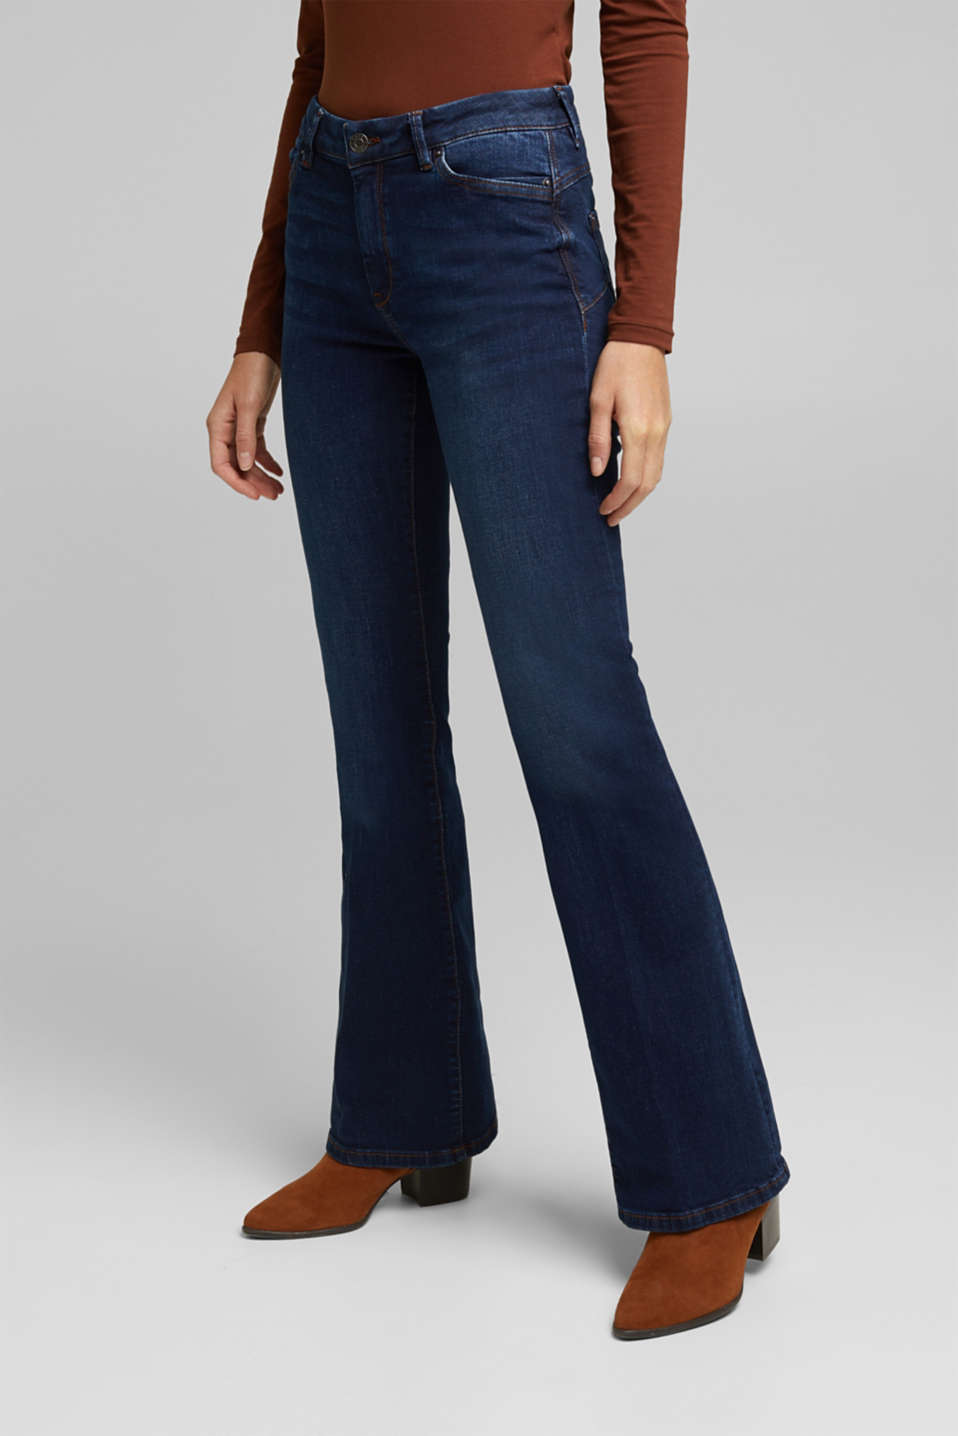 Esprit - Bootcut jeans made of organic cotton